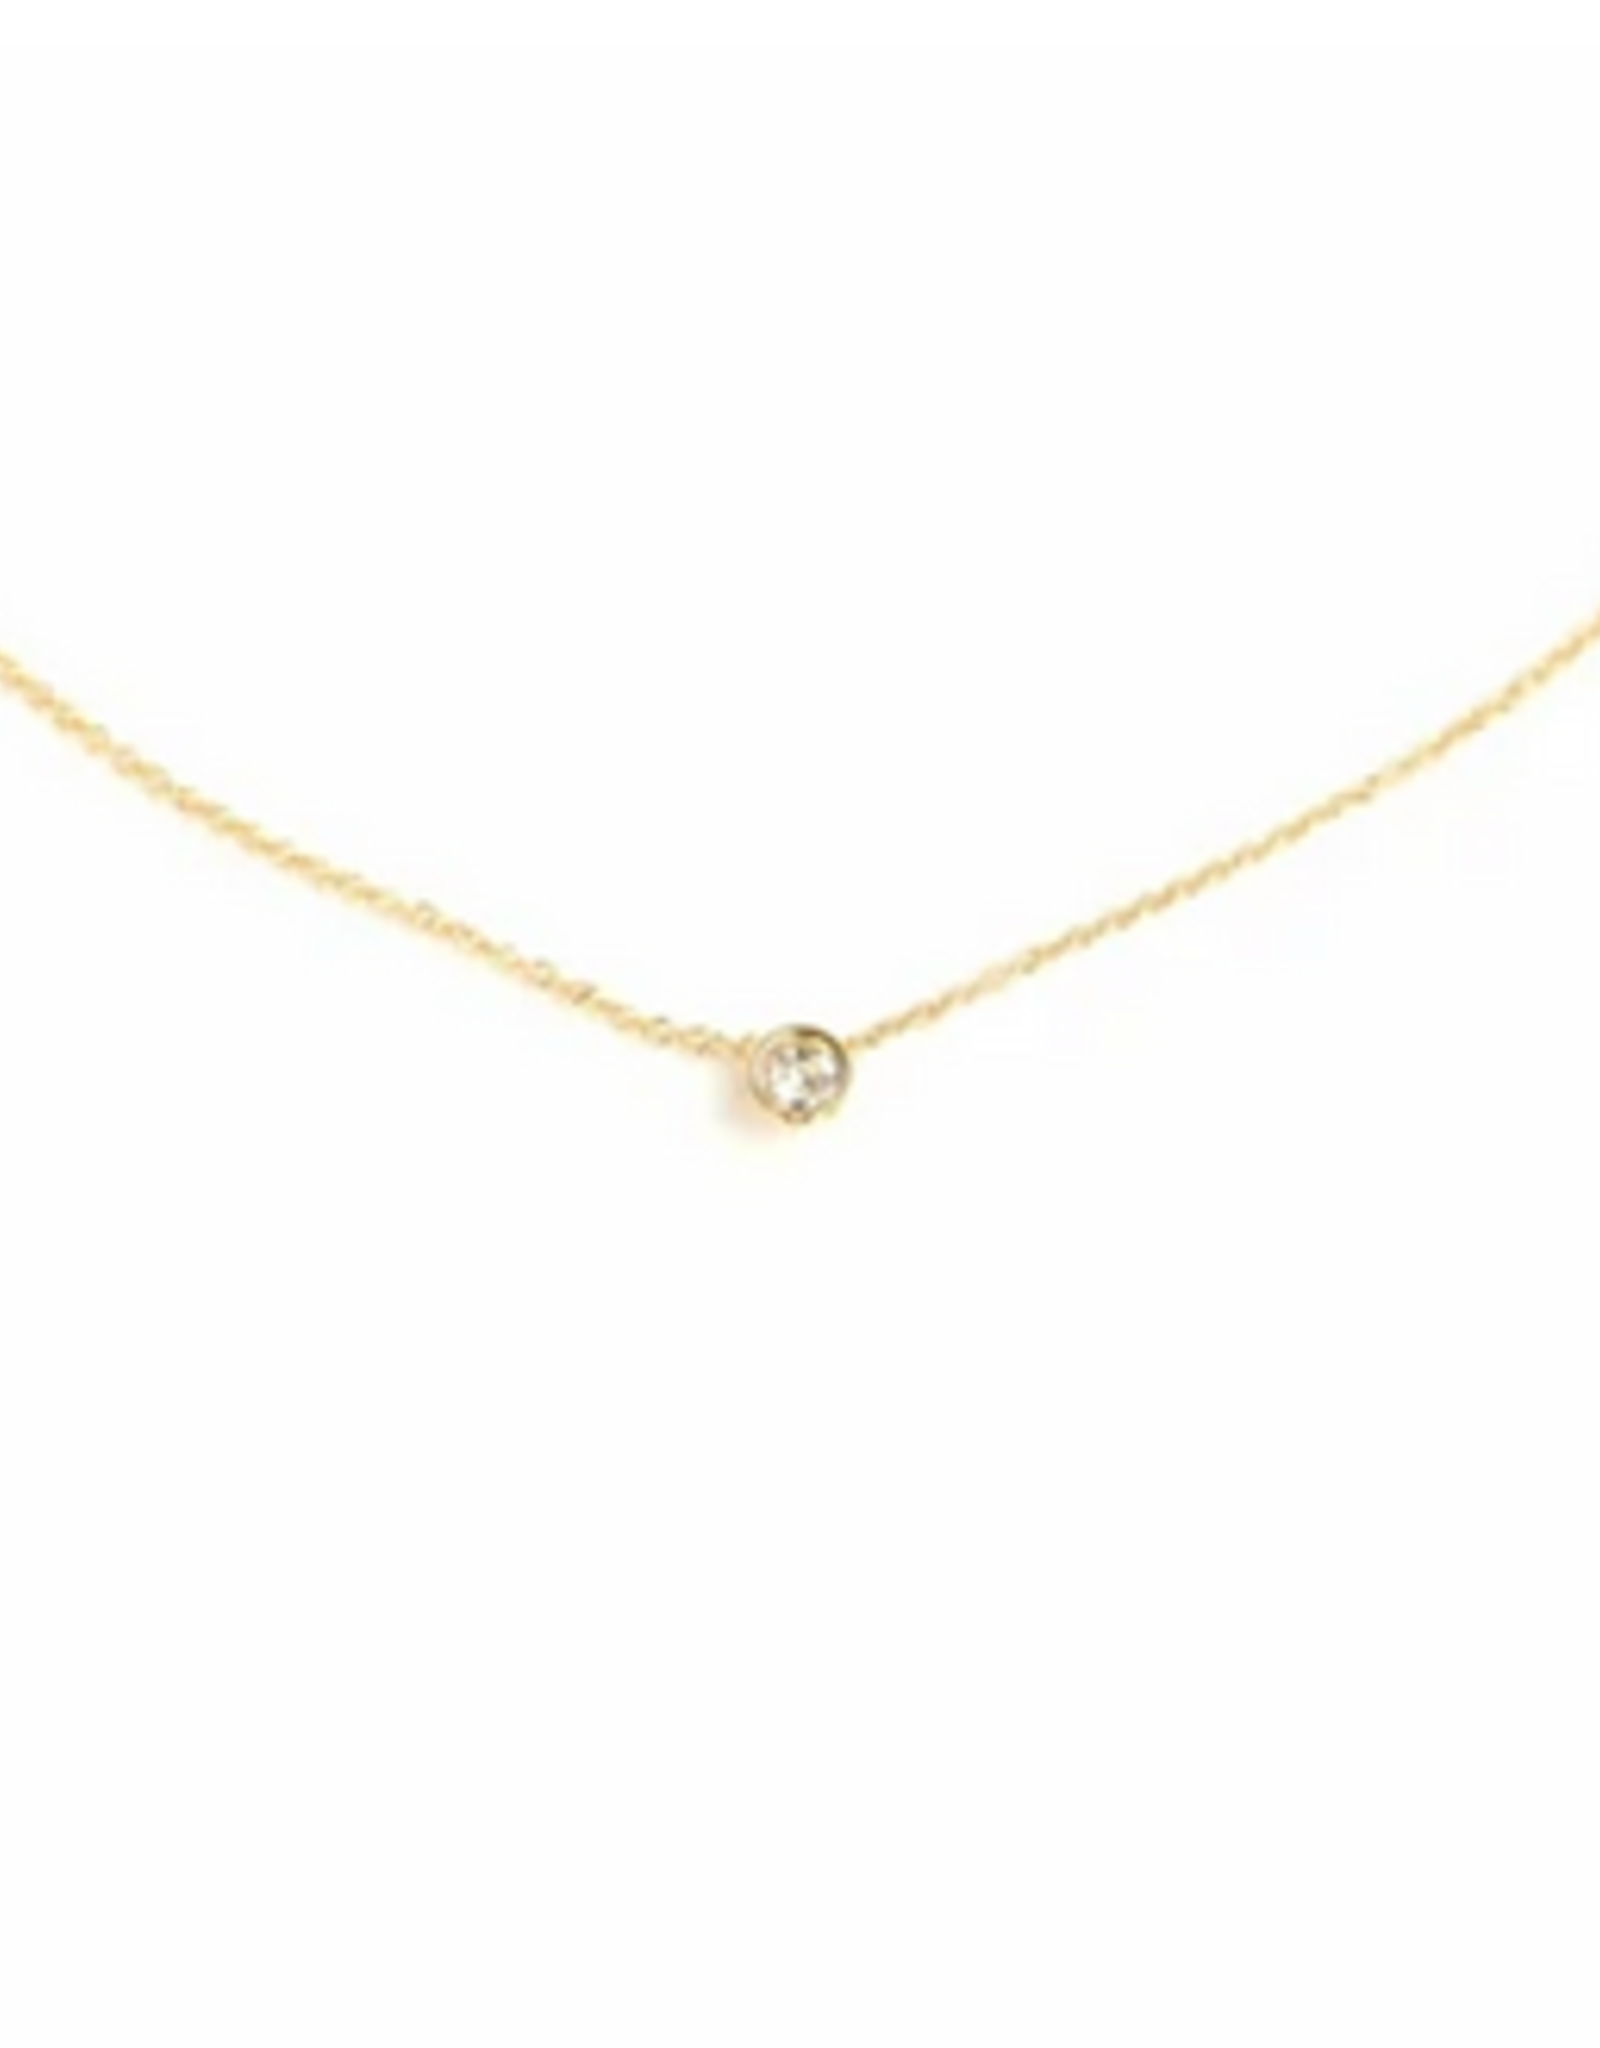 Gold Solitaire Necklace